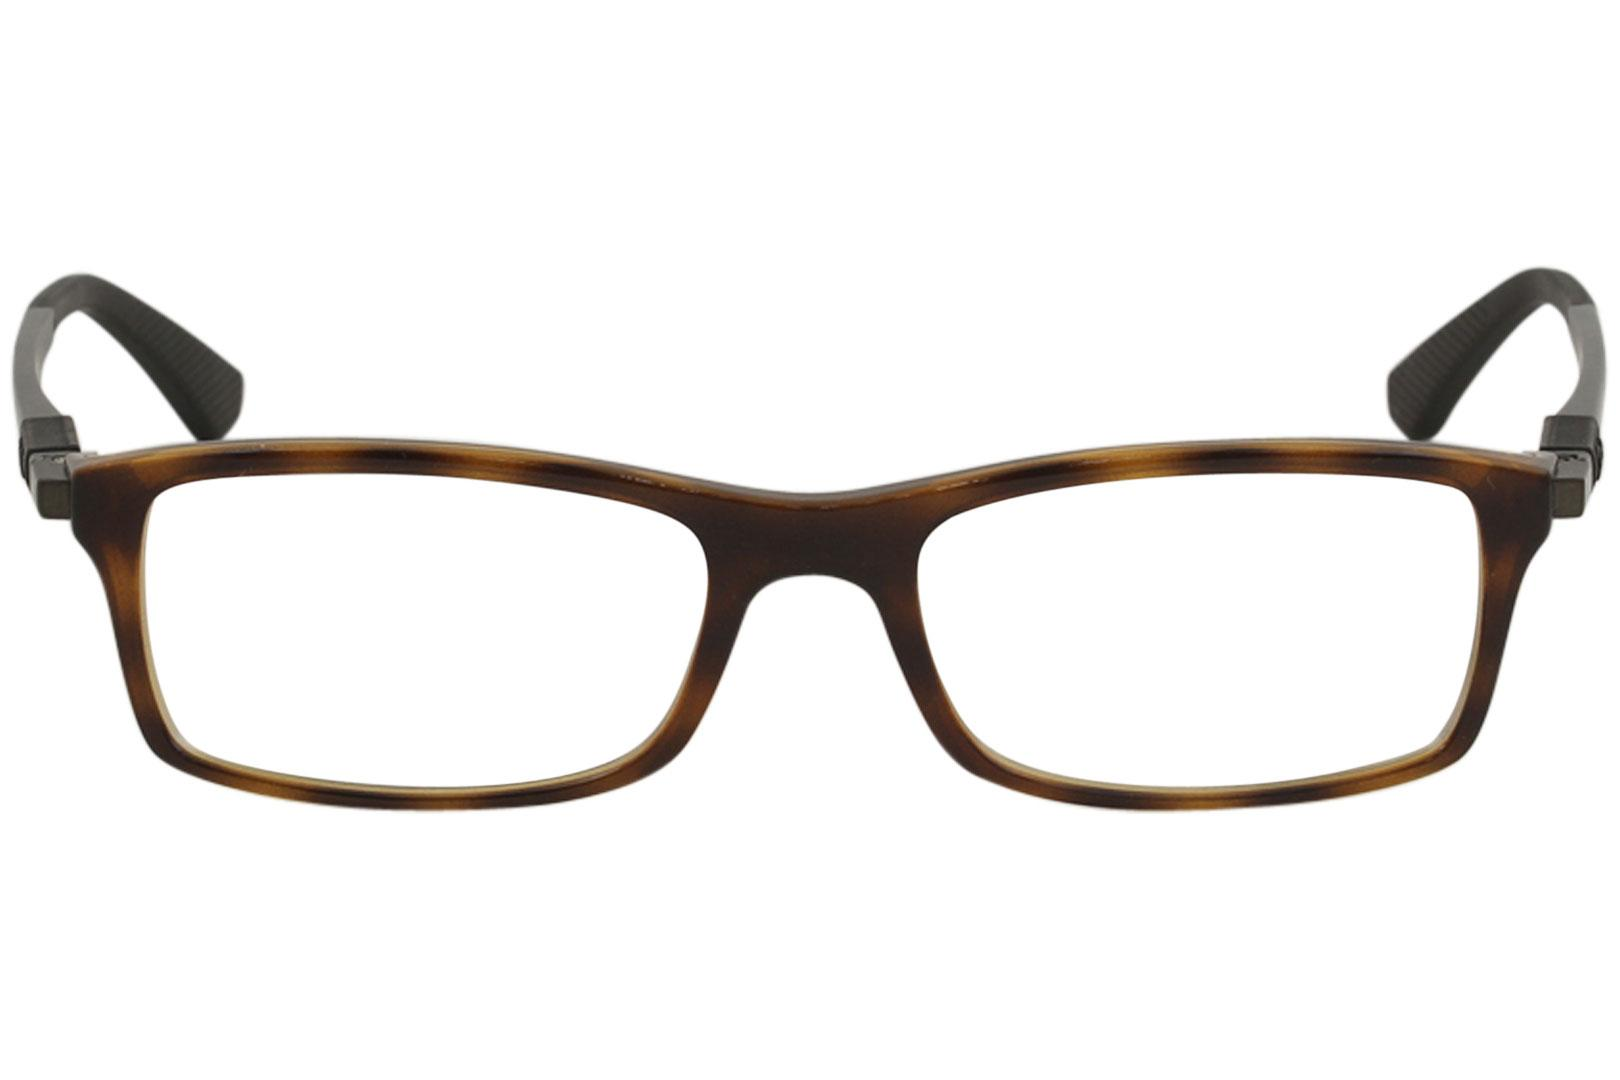 1d1b50ff6e Ray Ban Men s Eyeglasses RB7017 RB 7017 RayBan Full Rim Optical Frame